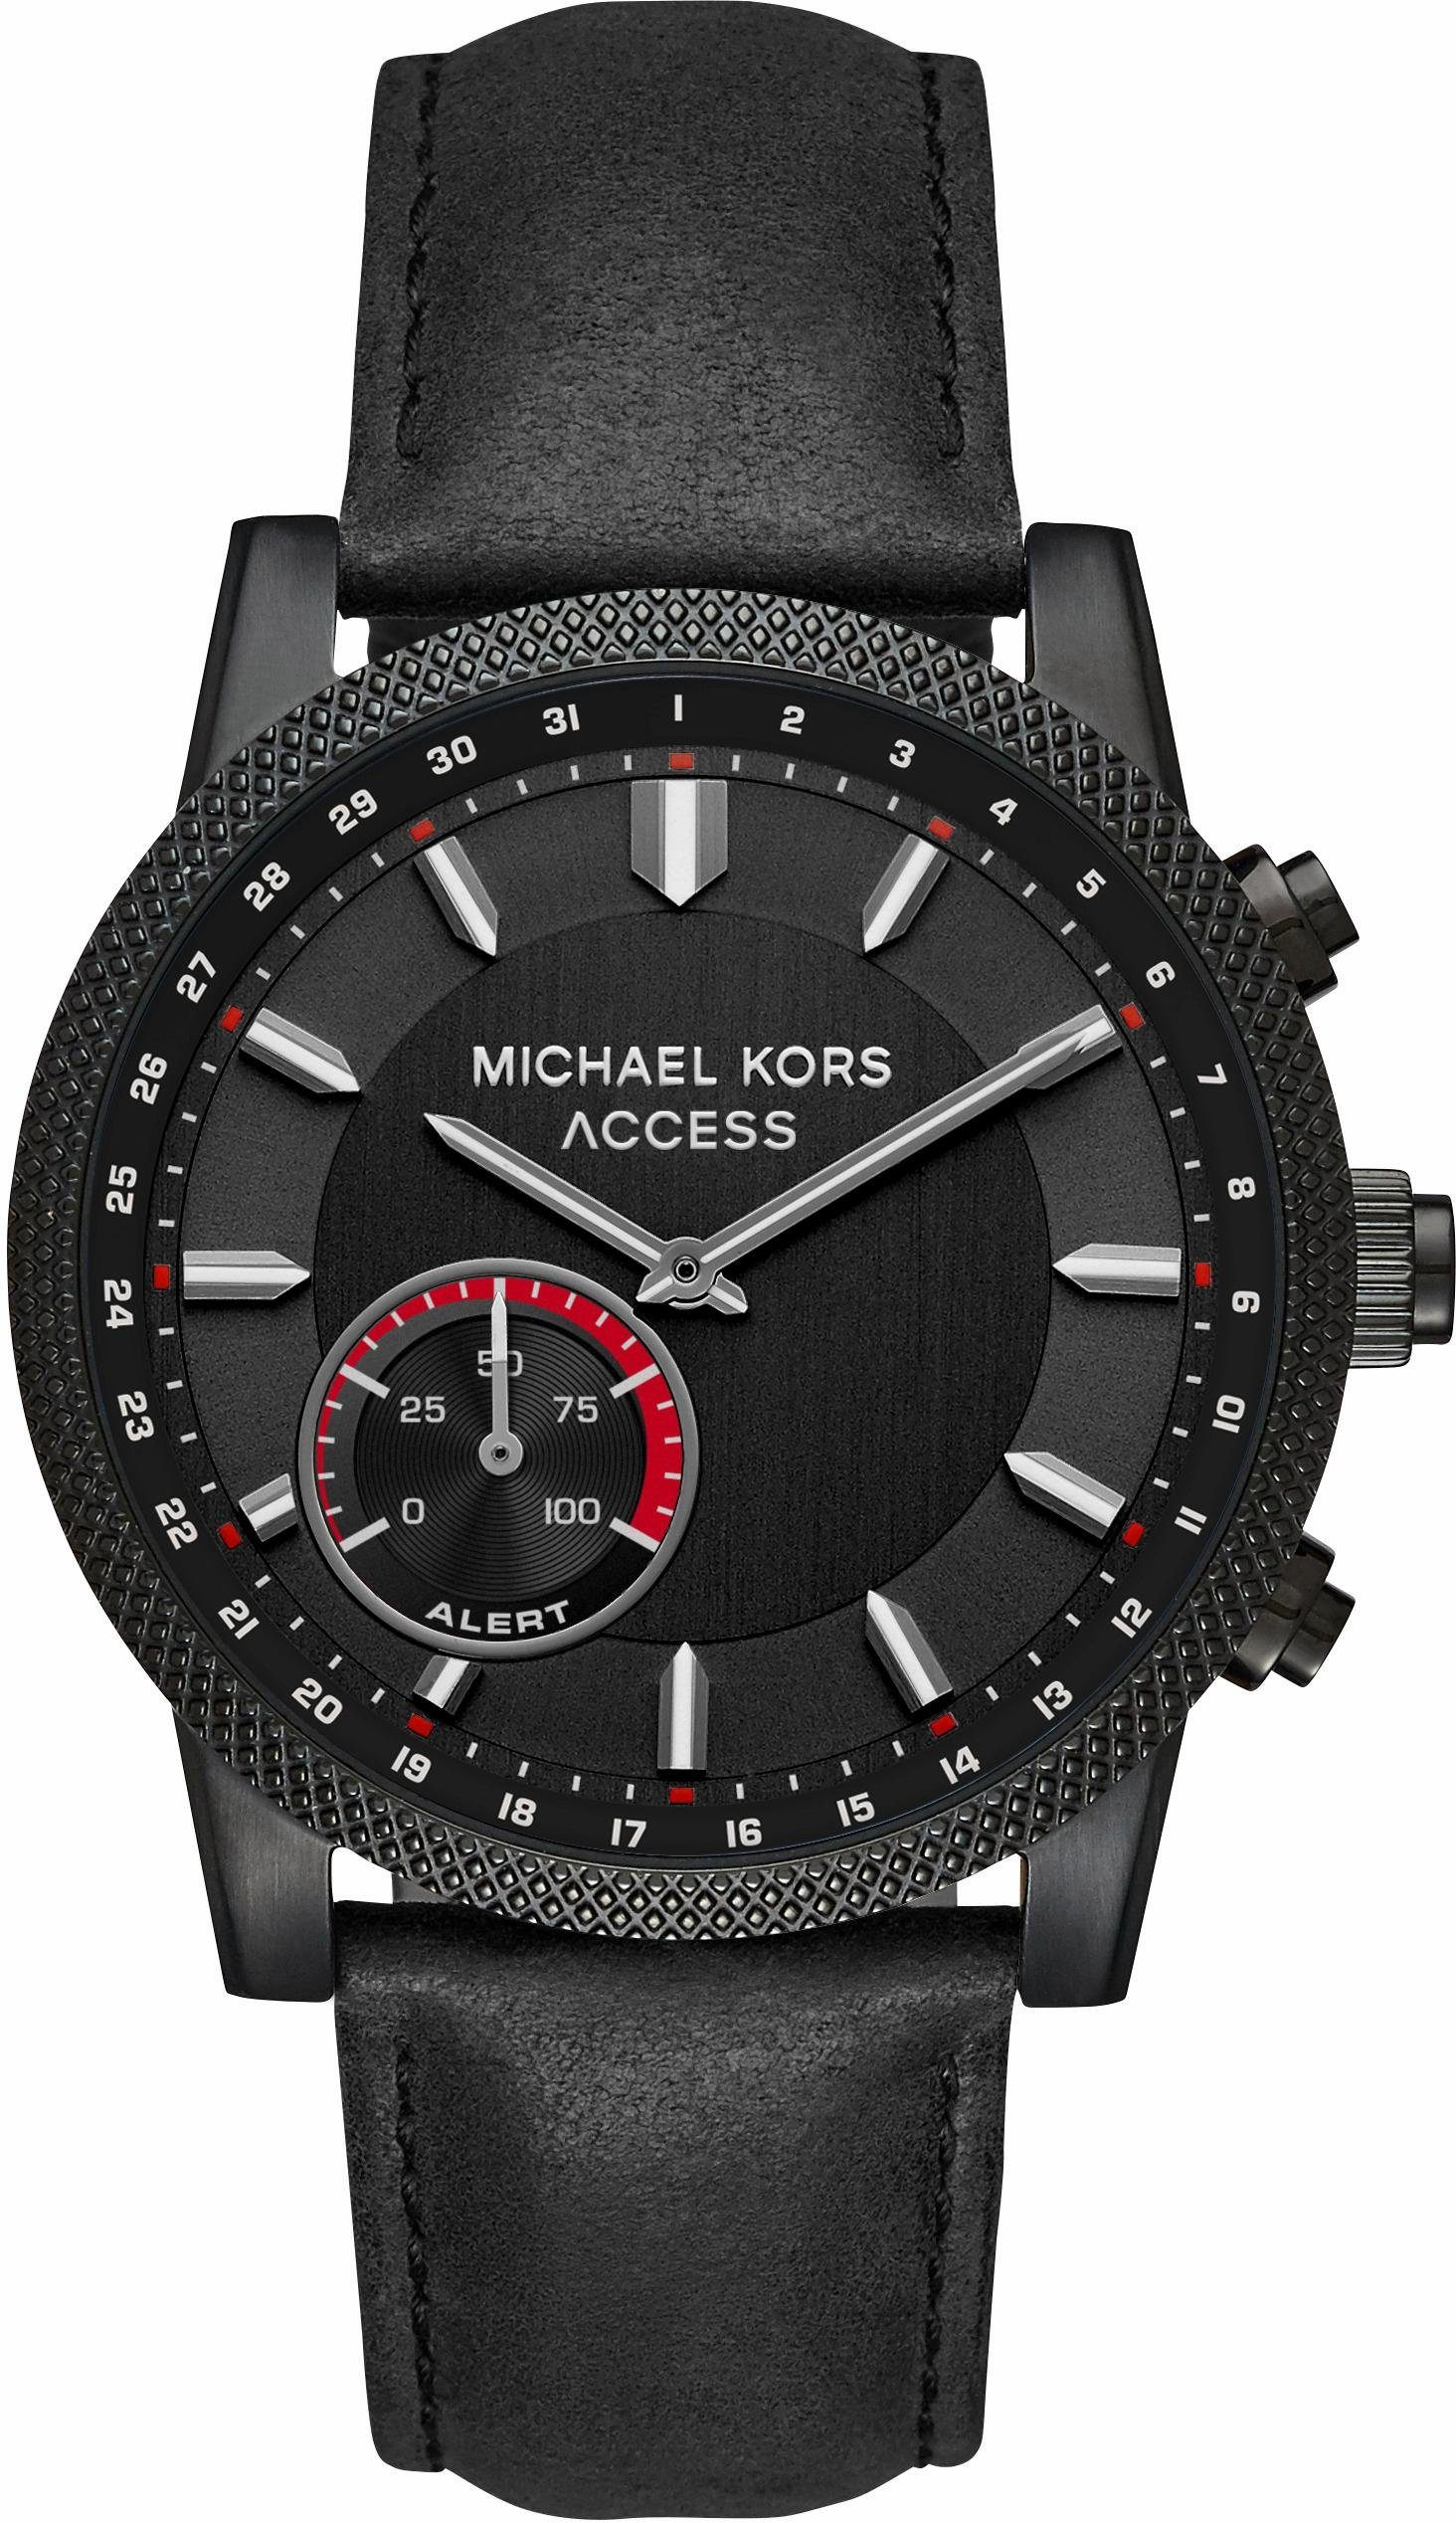 MICHAEL KORS ACCESS SCOUT, MKT4025 Smartwatch (Android Wear)